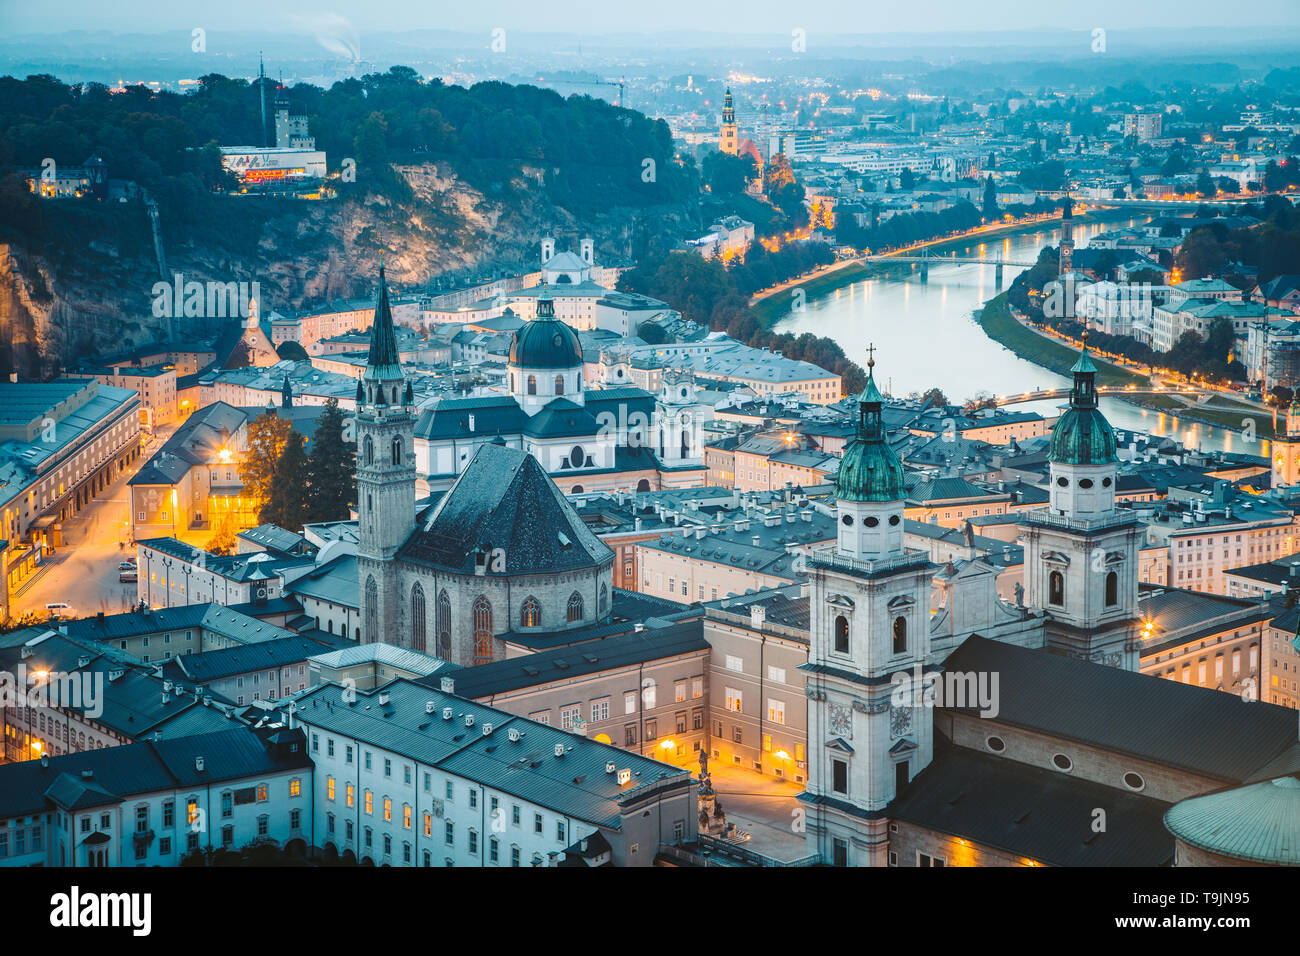 Classic twilight view of the historic city of Salzburg during blue hour at dusk in summer, Salzburger Land, Austria - Stock Image